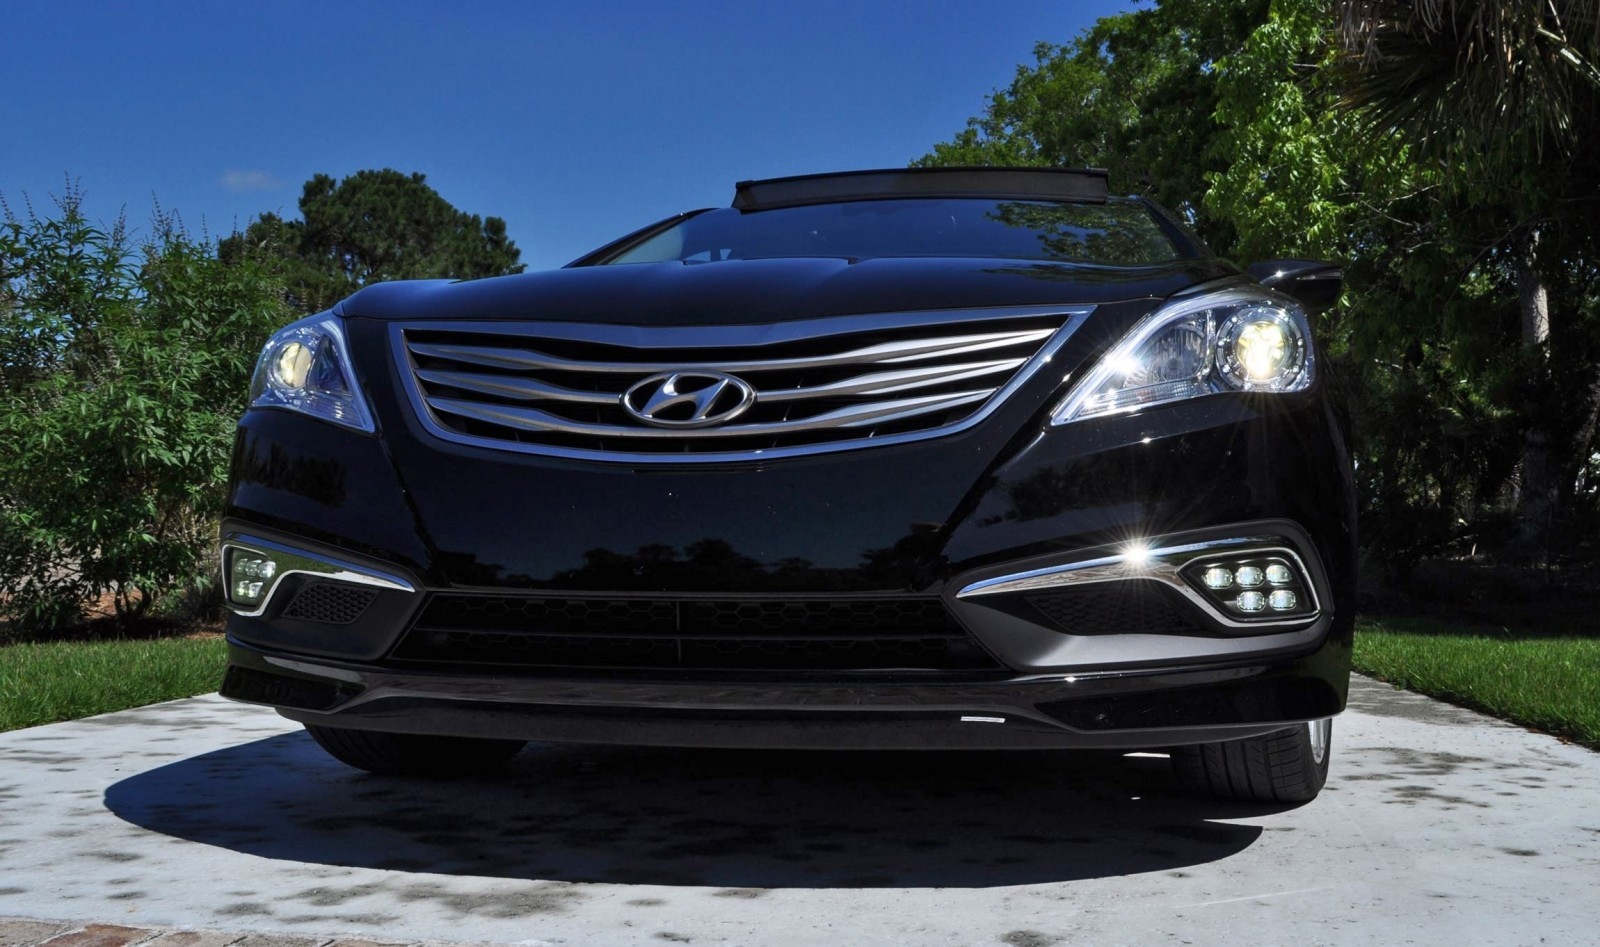 Road Test Review - 2015 Hyundai AZERA Limited 99